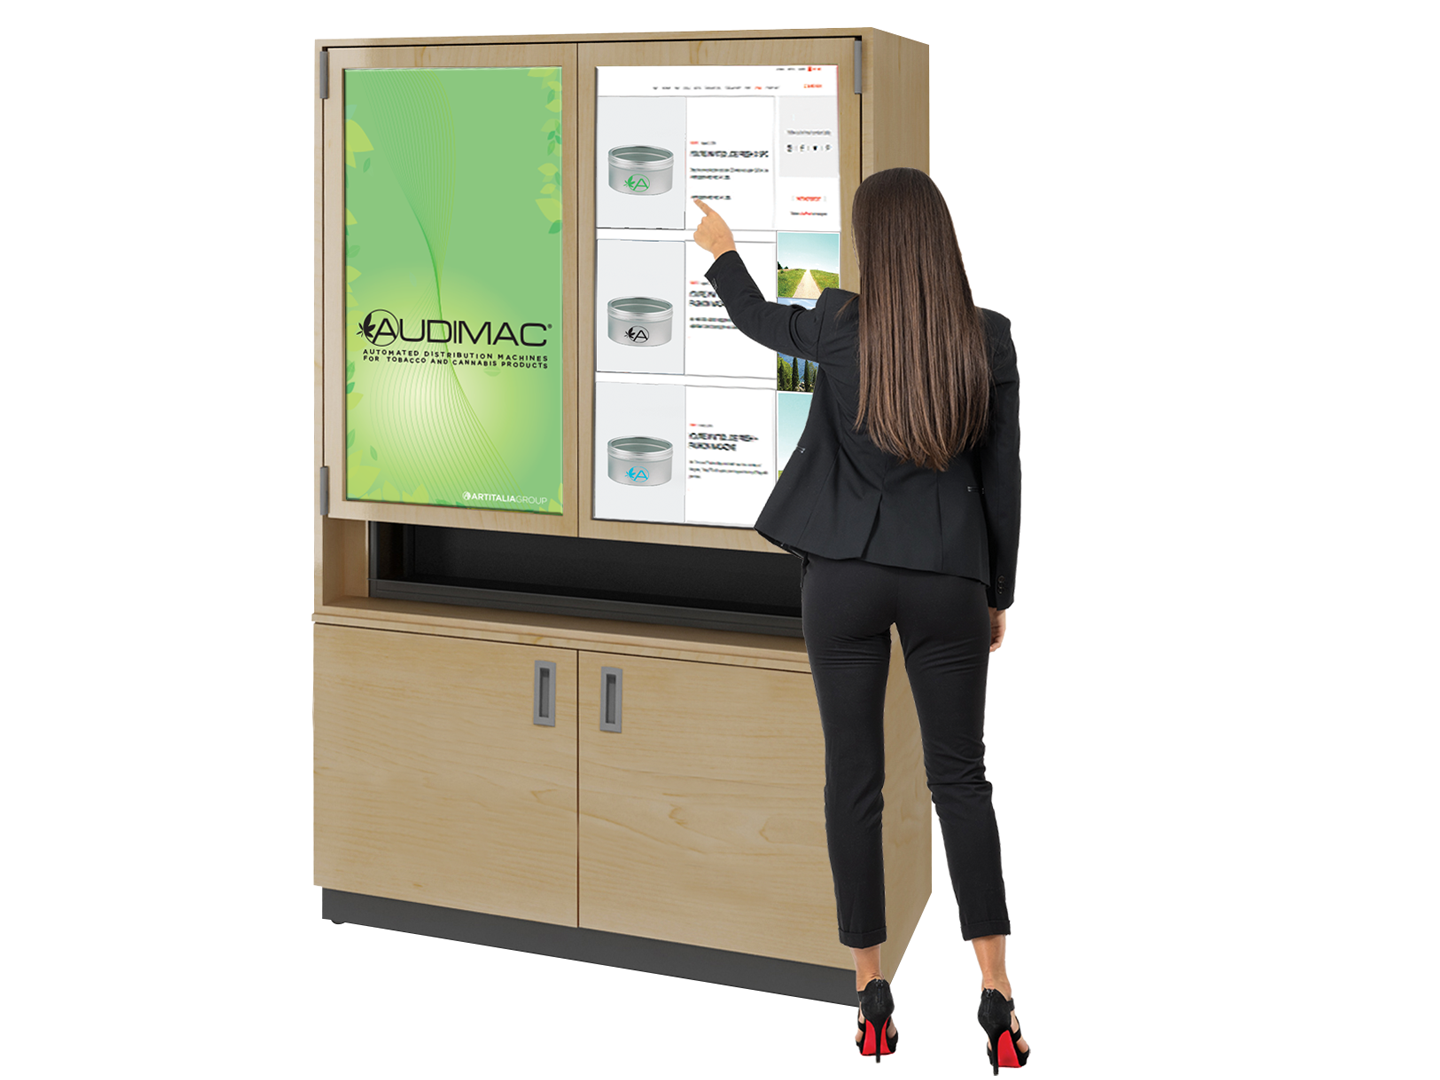 Controlled Product Management and Distribution System for Convinience Store and Dispensaries